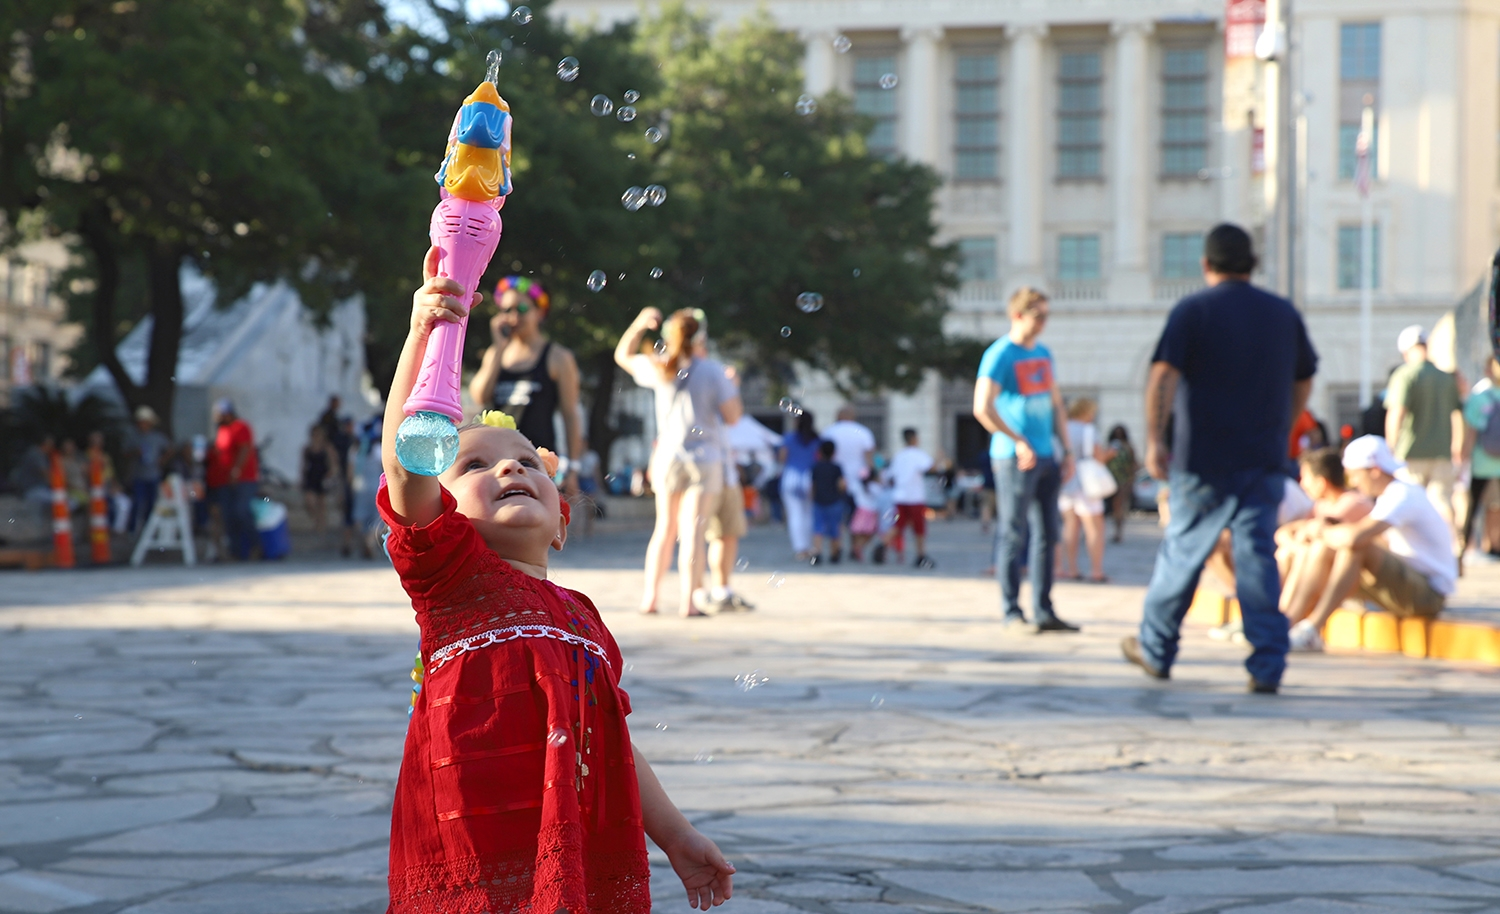 Ellie Valdez, 2, shoots bubbles in the air in front of the Alamo before the start of the Flambeau Parade on Saturday. <em>Photo by Brianna Rodrigue | Heron contributor</em>